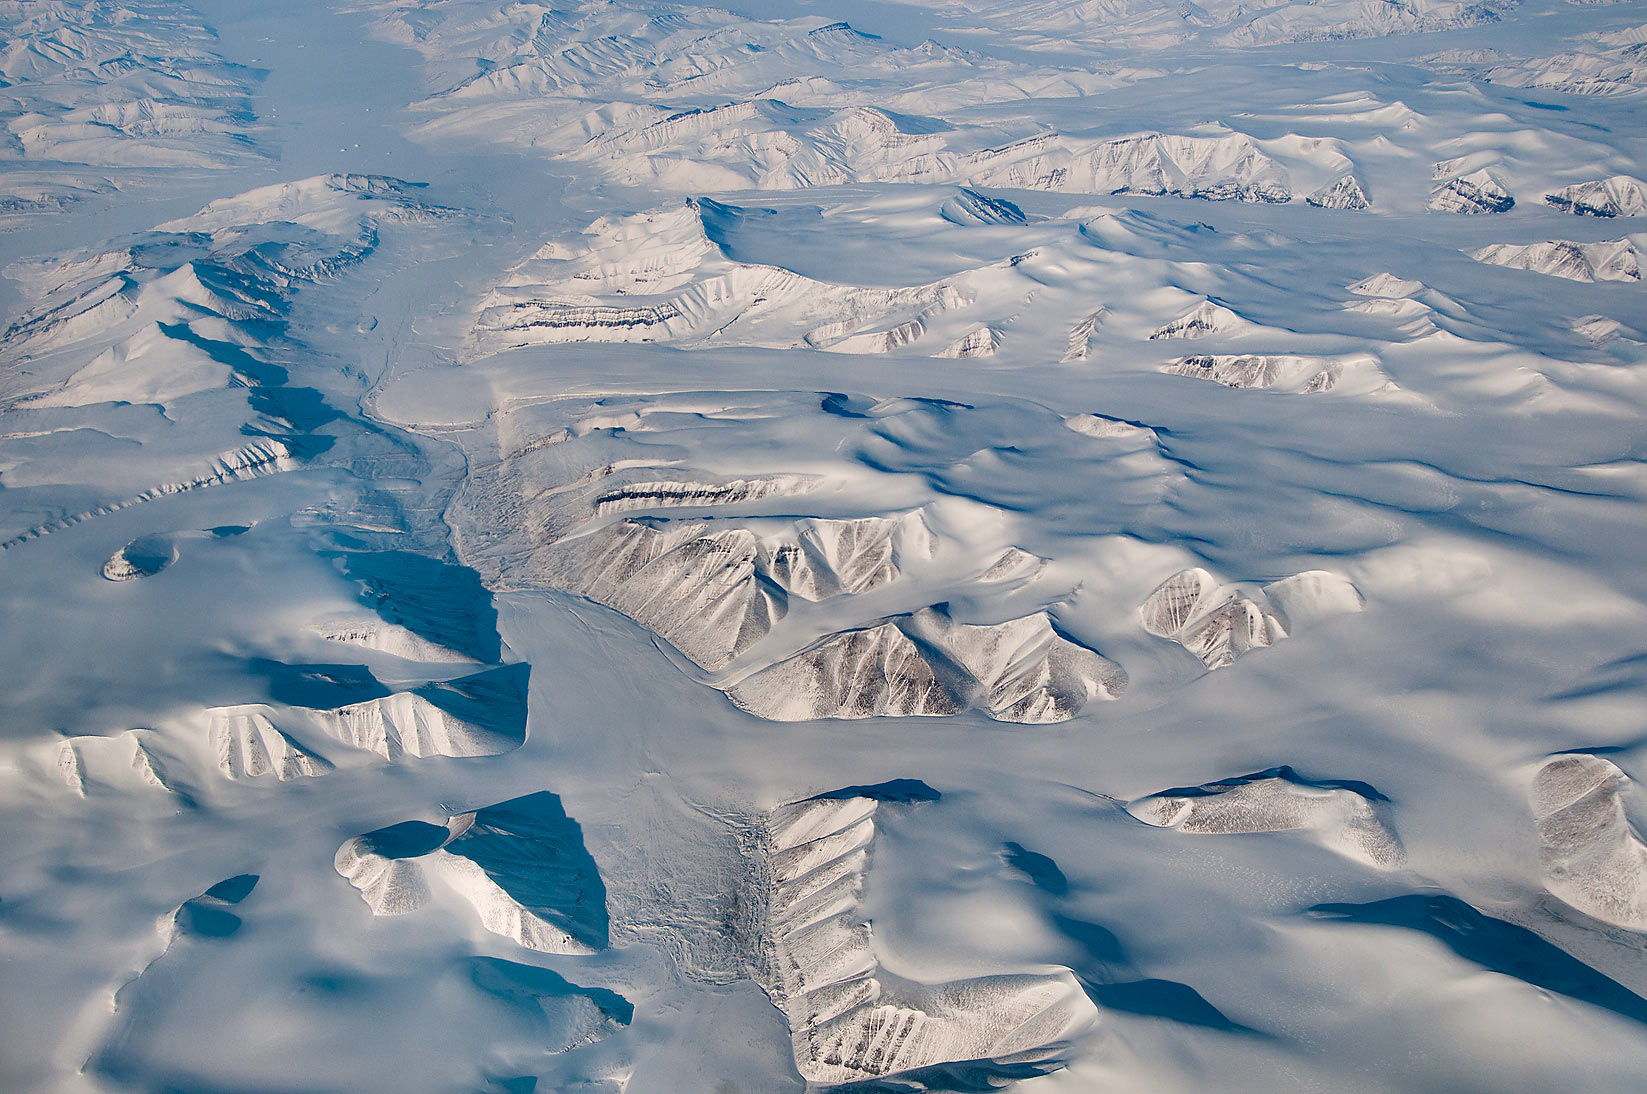 Glacier of Ellesmere Island, Canada. View from a...a plane from Dubai, UAE to Houston, TX